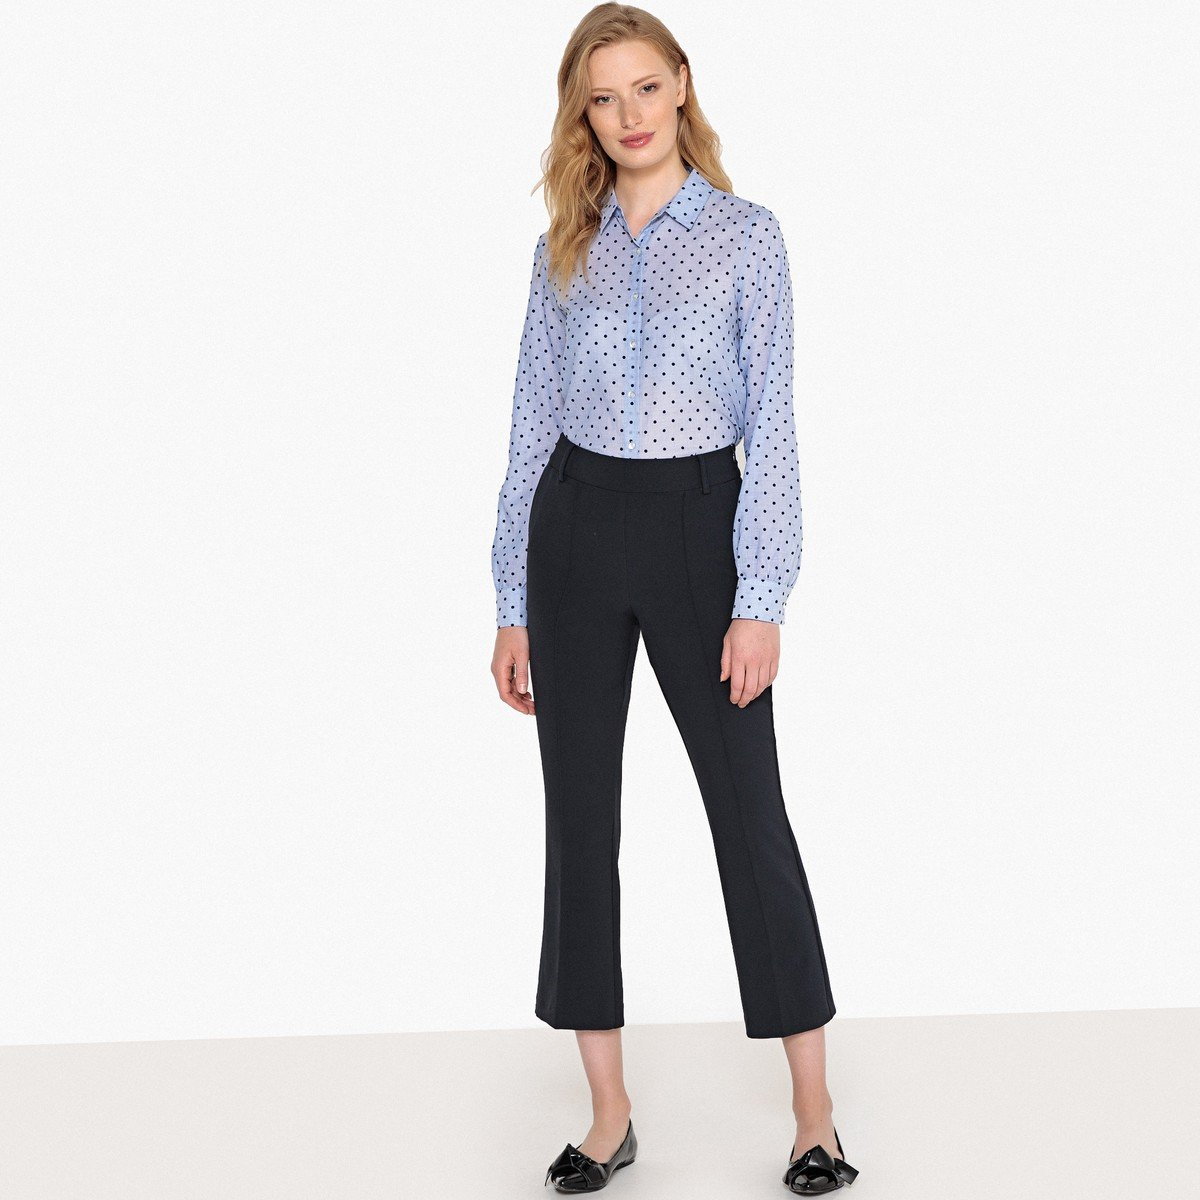 bf352674dc9 La Redoute Collections Womens Textured Polka Dot Long-Sleeved&Nbsp;Shirt  Blue Size US 18 - FR 48 at Amazon Women's Clothing store: